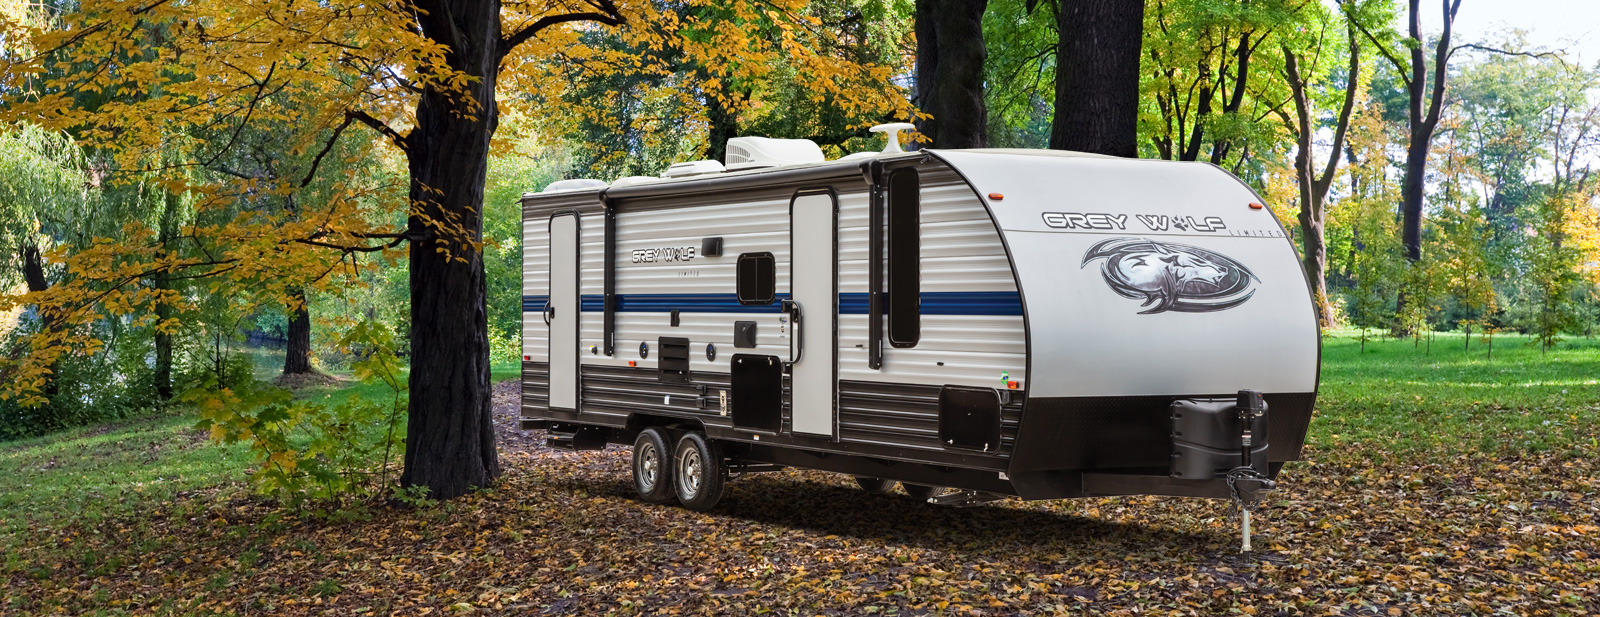 Wolfe Camper Sales >> Grey Wolf West Forest River Rv Manufacturer Of Travel Trailers